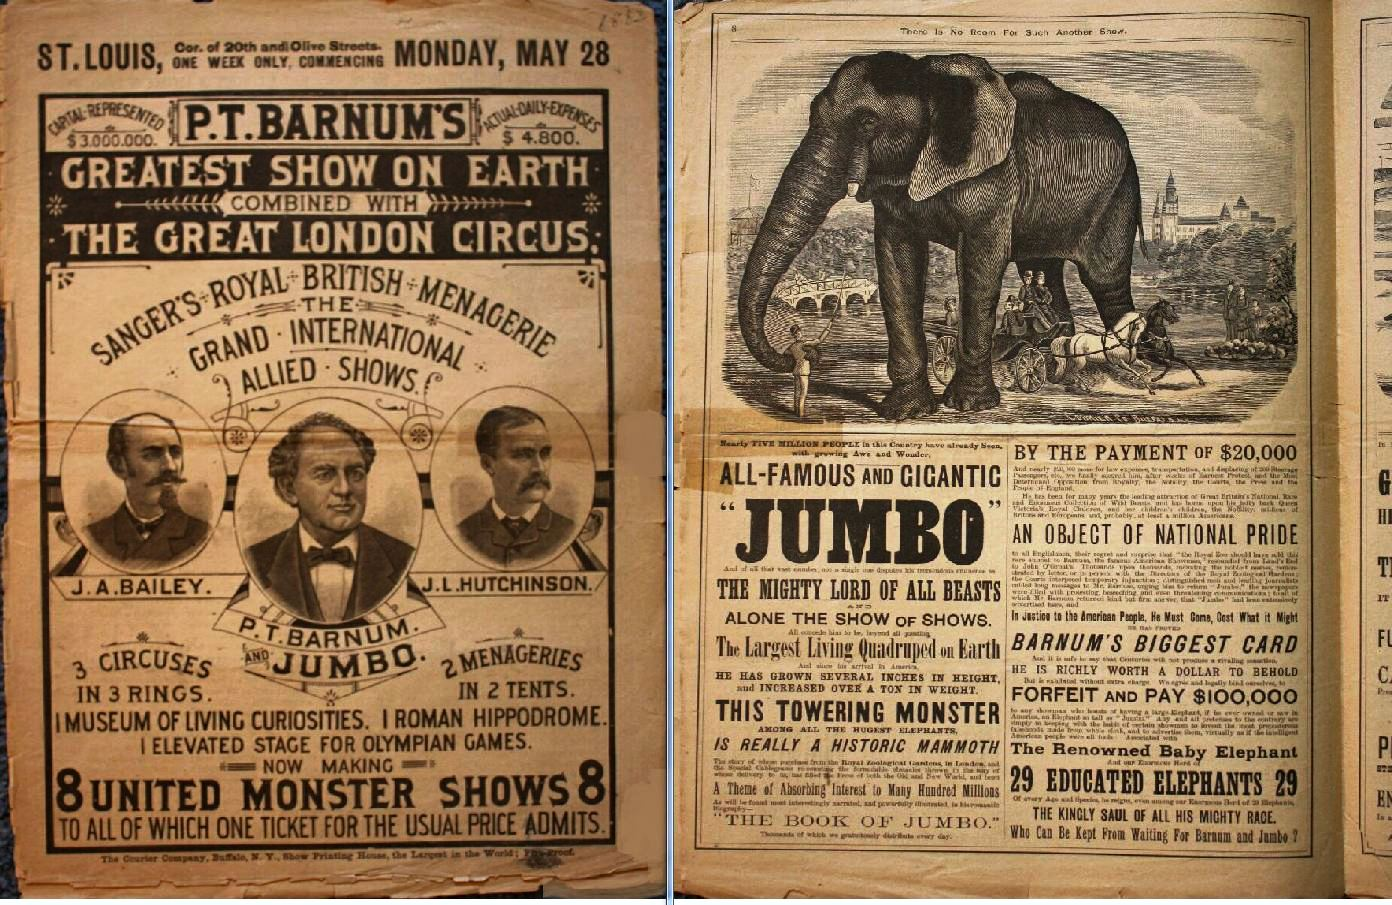 the issue of race and gender in the projects of pt barnum and the circus culture